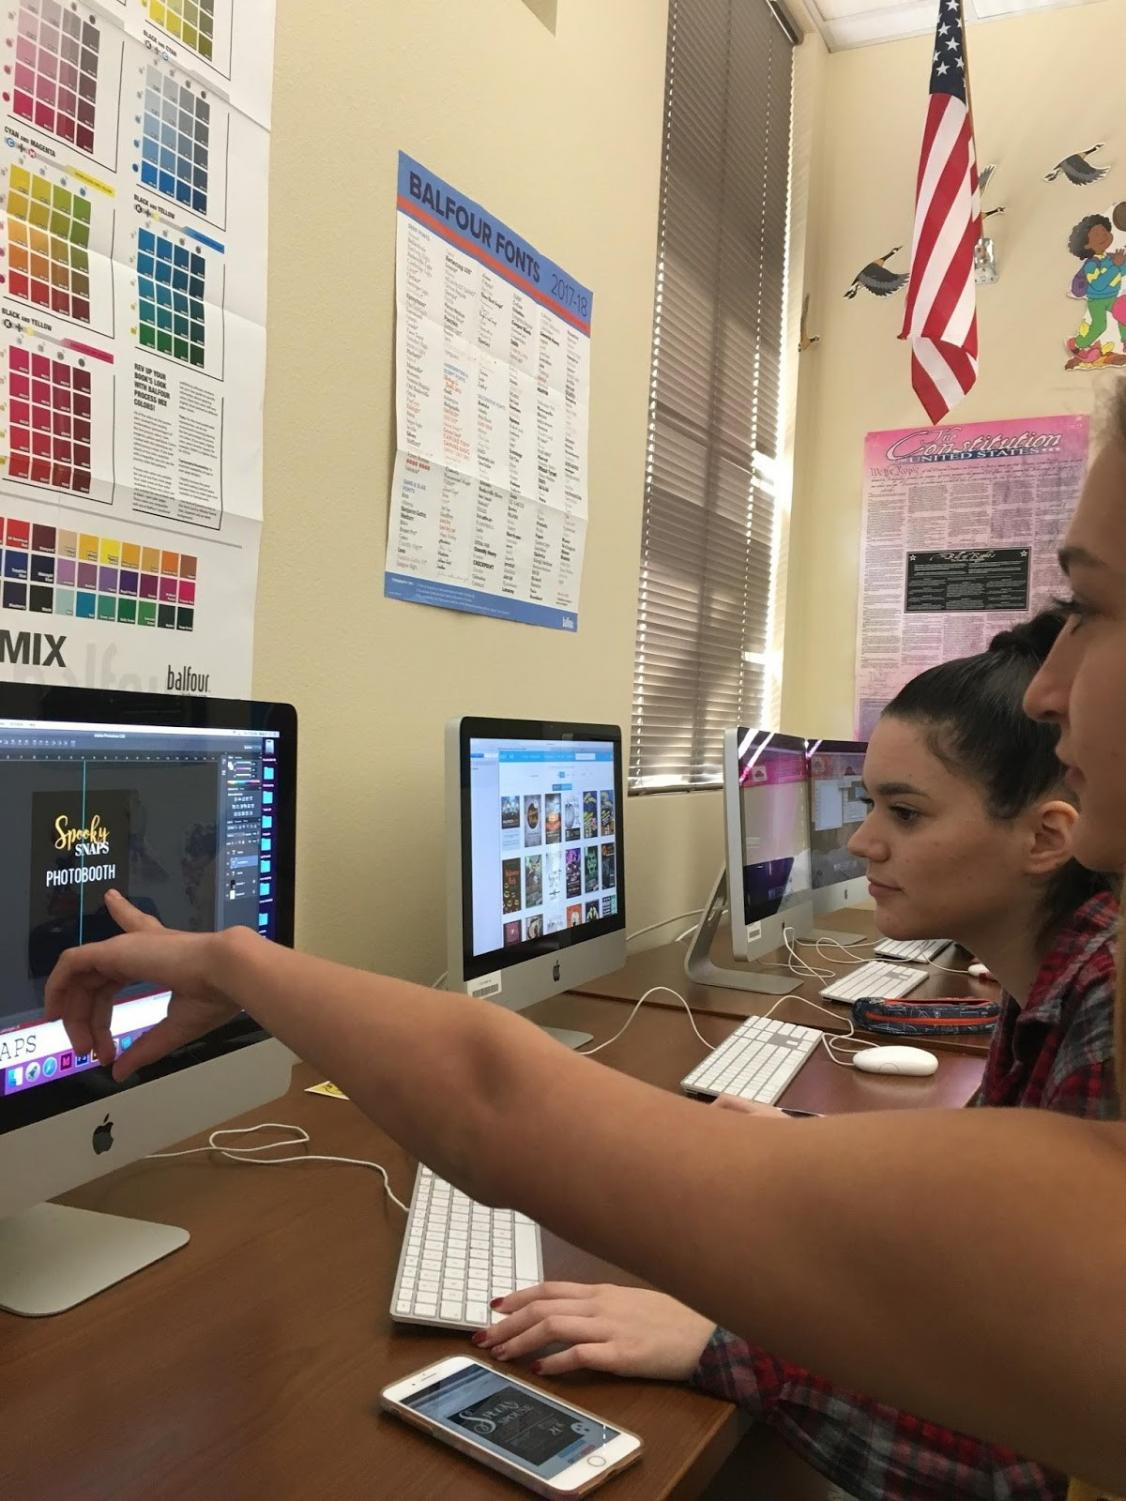 Yearbook members, Izabela Duarte and Nikki Nelson, work on making a flyer to advertise Spooky Snaps on October 19, 2017 in the yearbook classroom. The Spooky Snaps photo booth is an important fundraiser for raising money to improve the quality of this year's yearbook. Photo by Kayla Wilson.